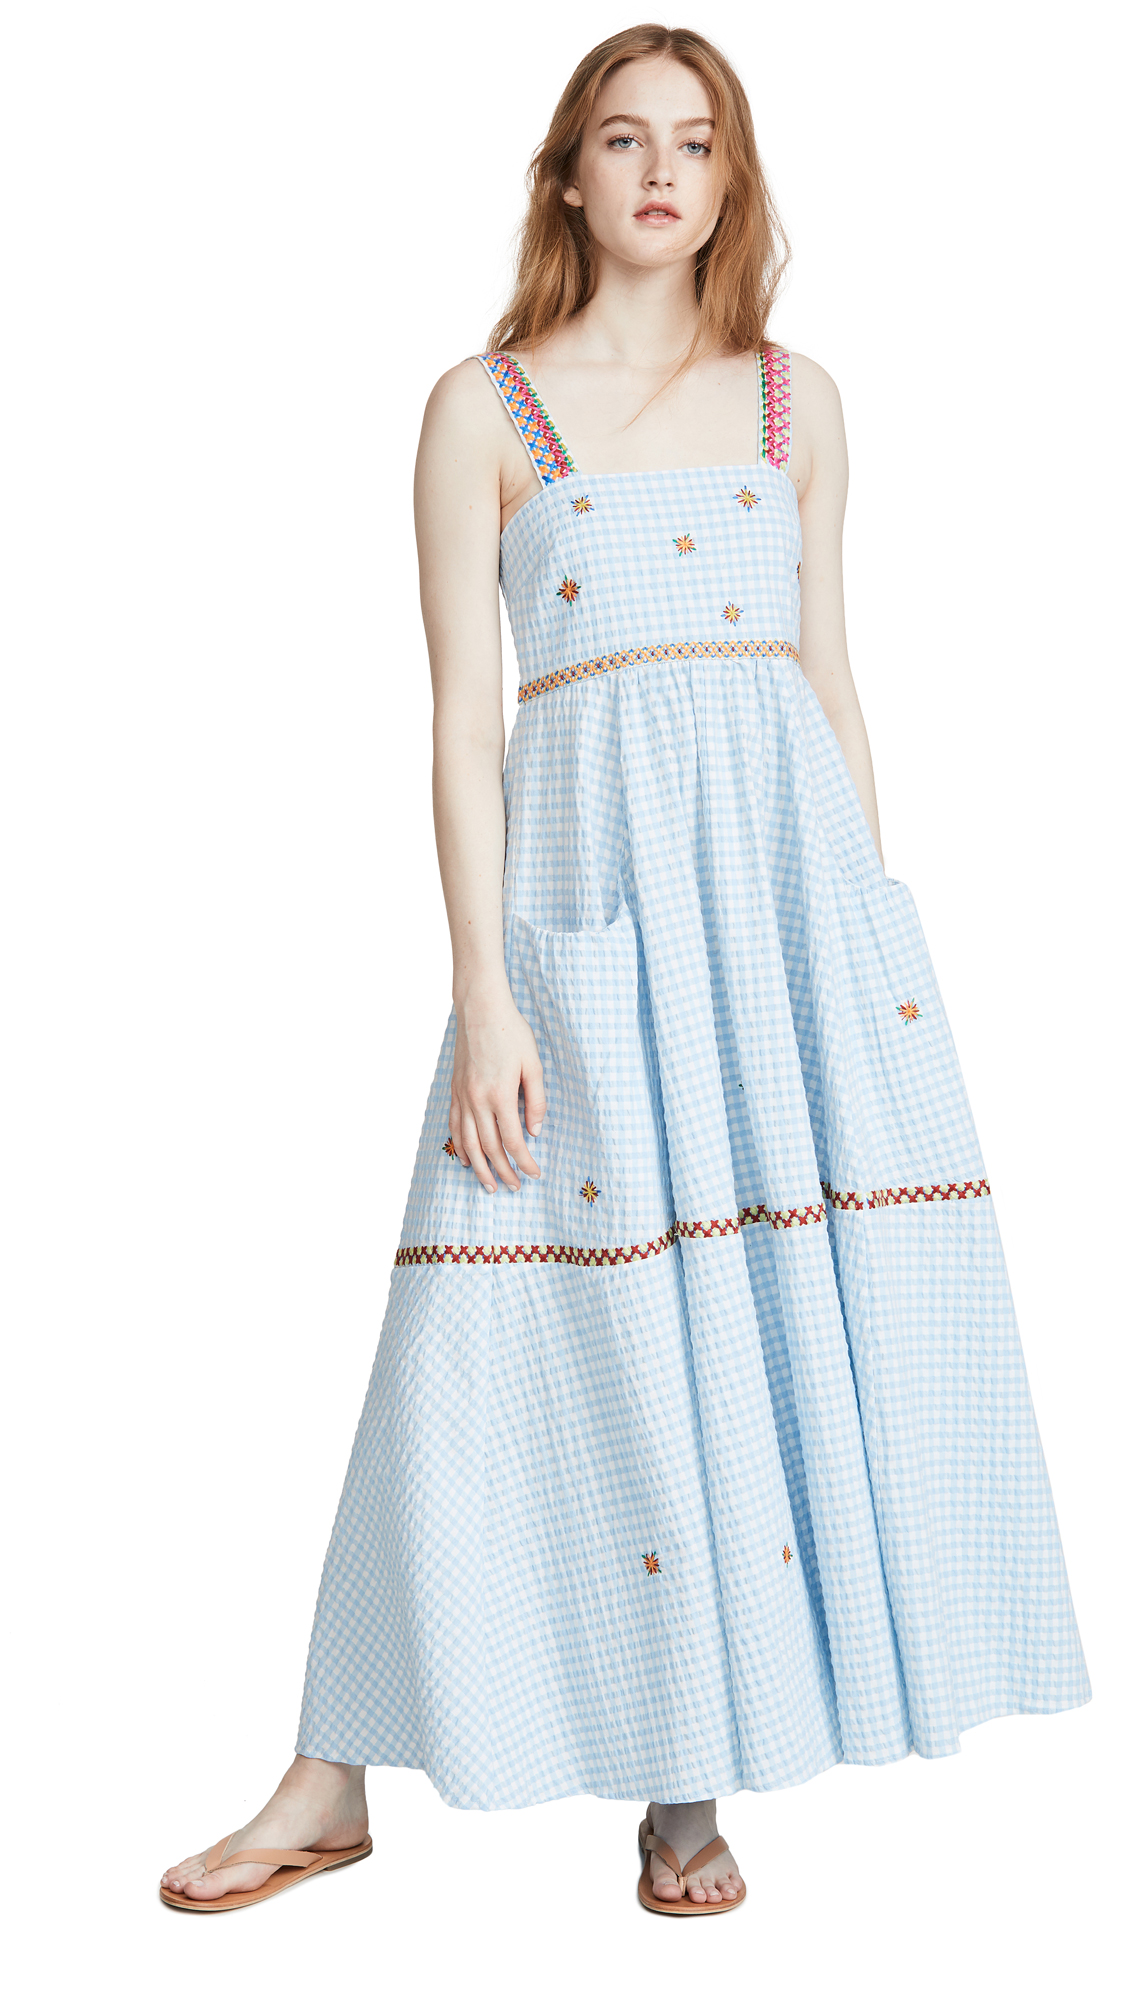 Mira Mikati Yarn Embroidered Cami Dress - 30% Off Sale